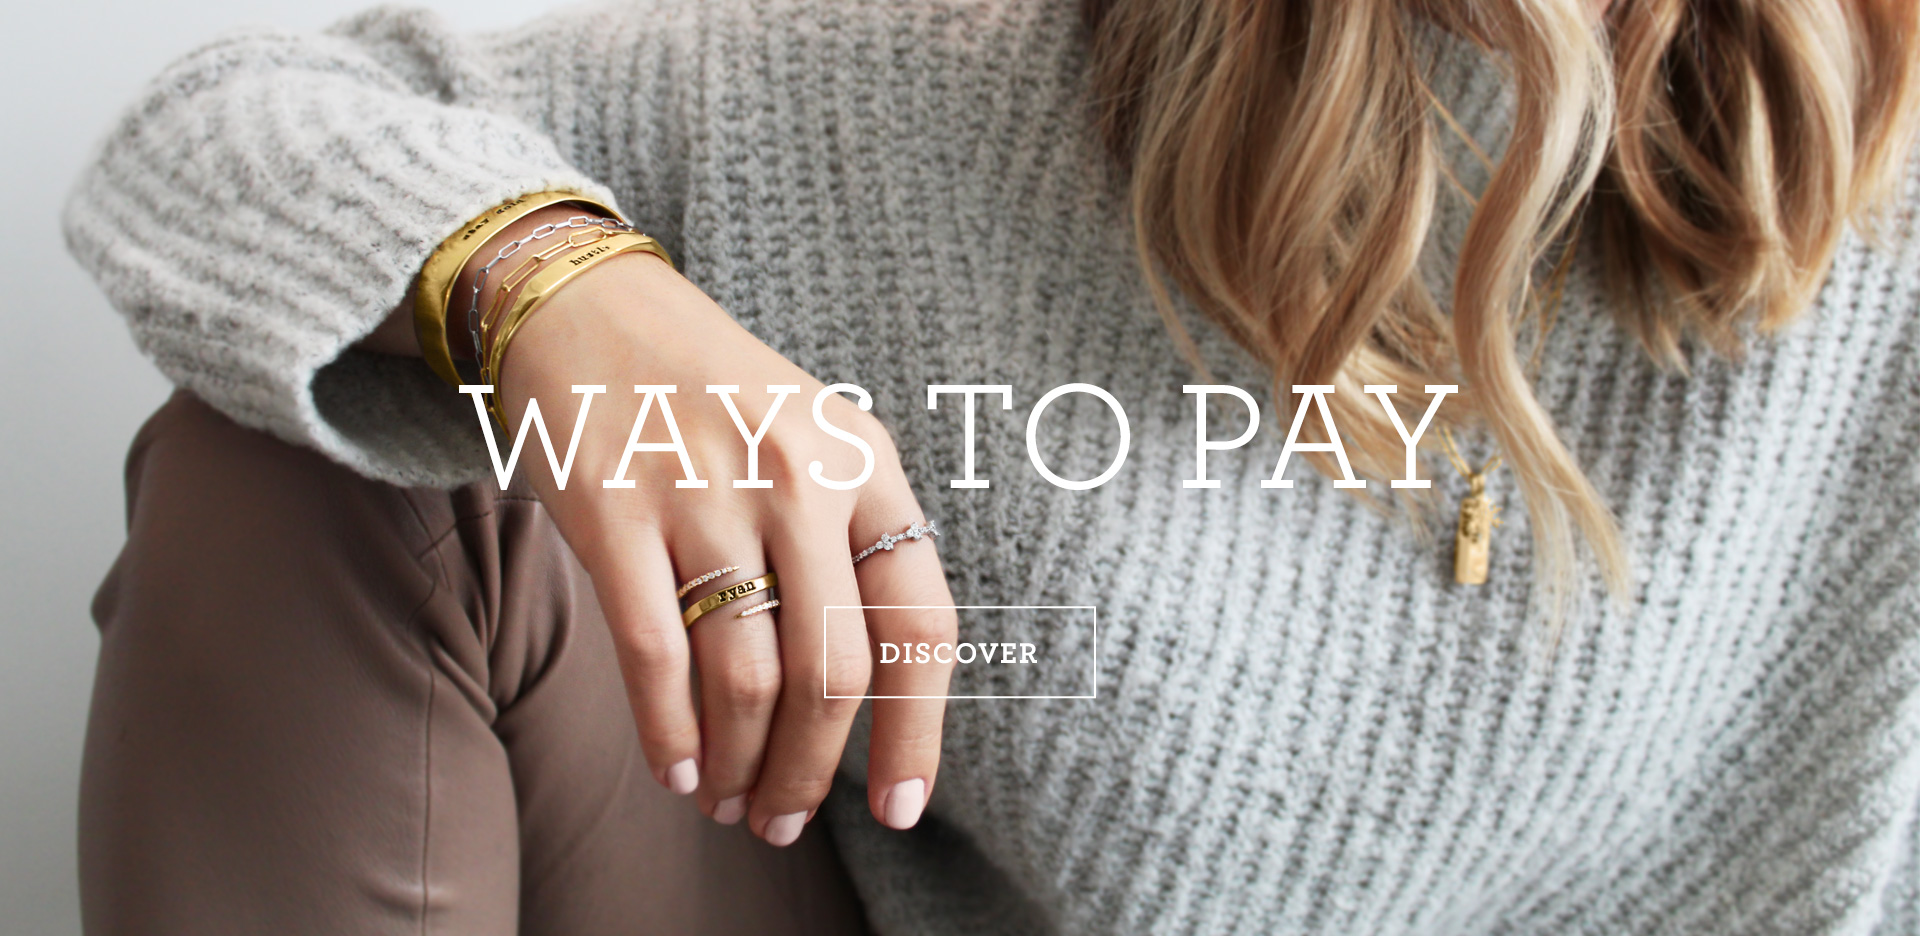 Way To Pay